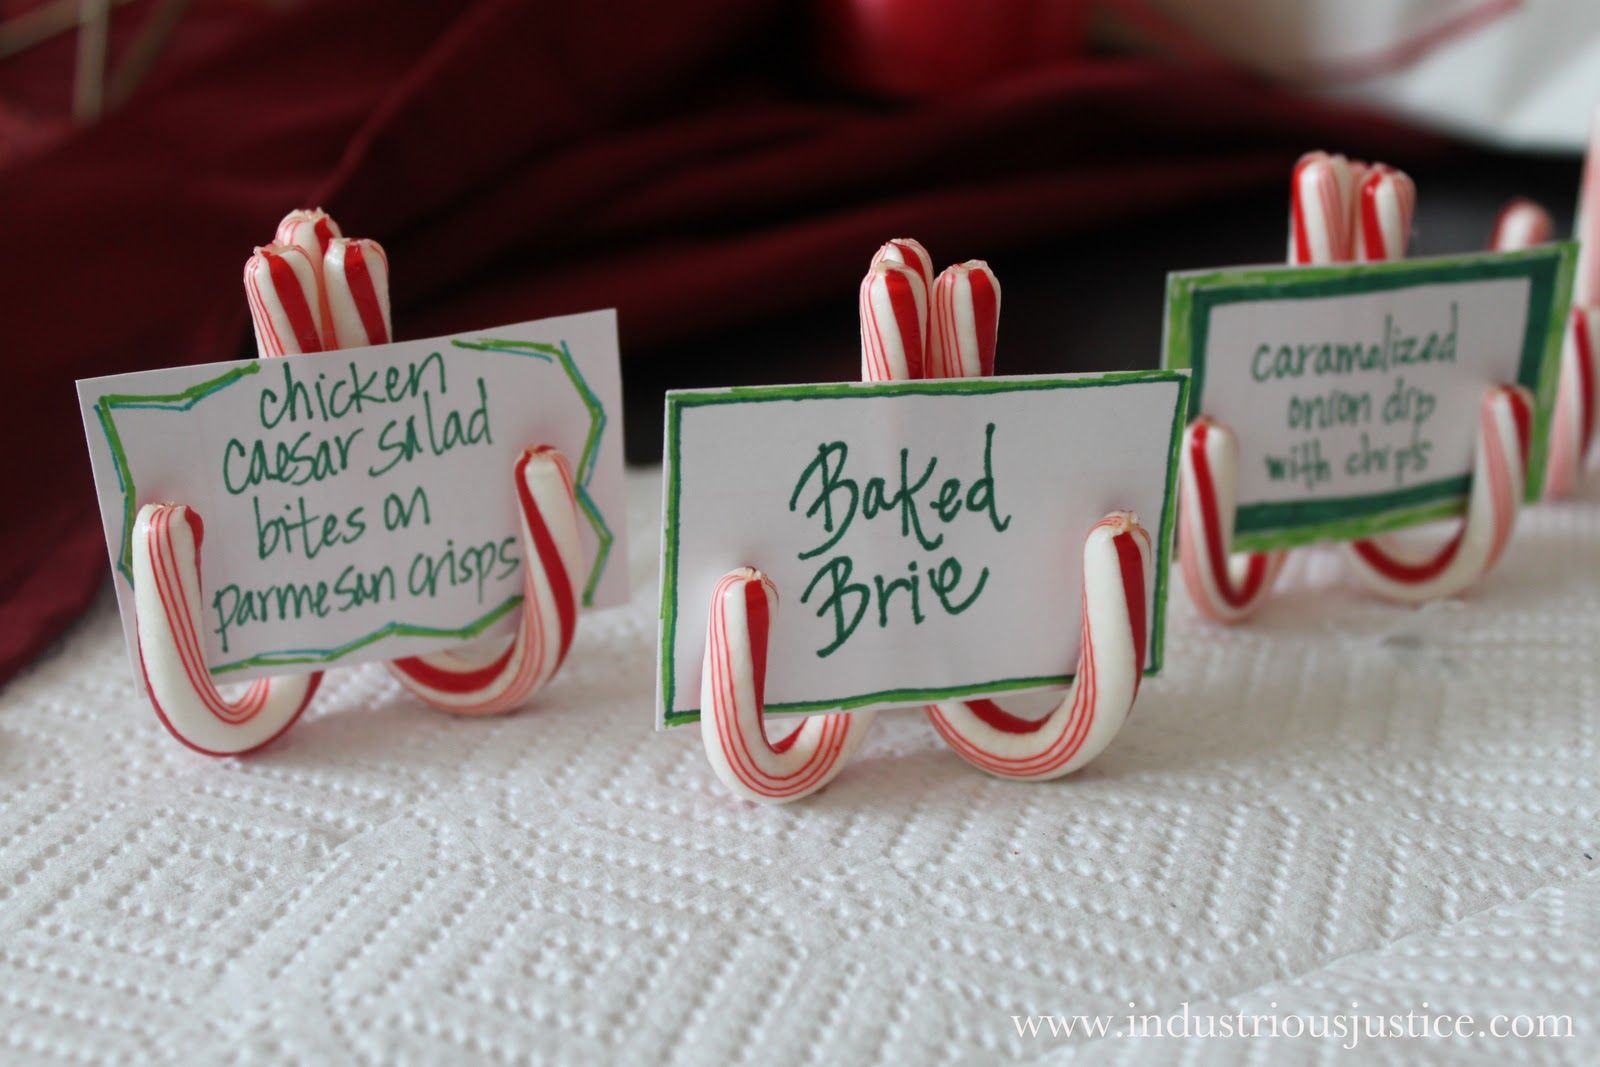 Funny Christmas Party Name Ideas Part - 28: Christmas: Candy Cane Place Card Holders - What A Great Idea! Candy Cane  Place Card Holders - What A Great Idea!